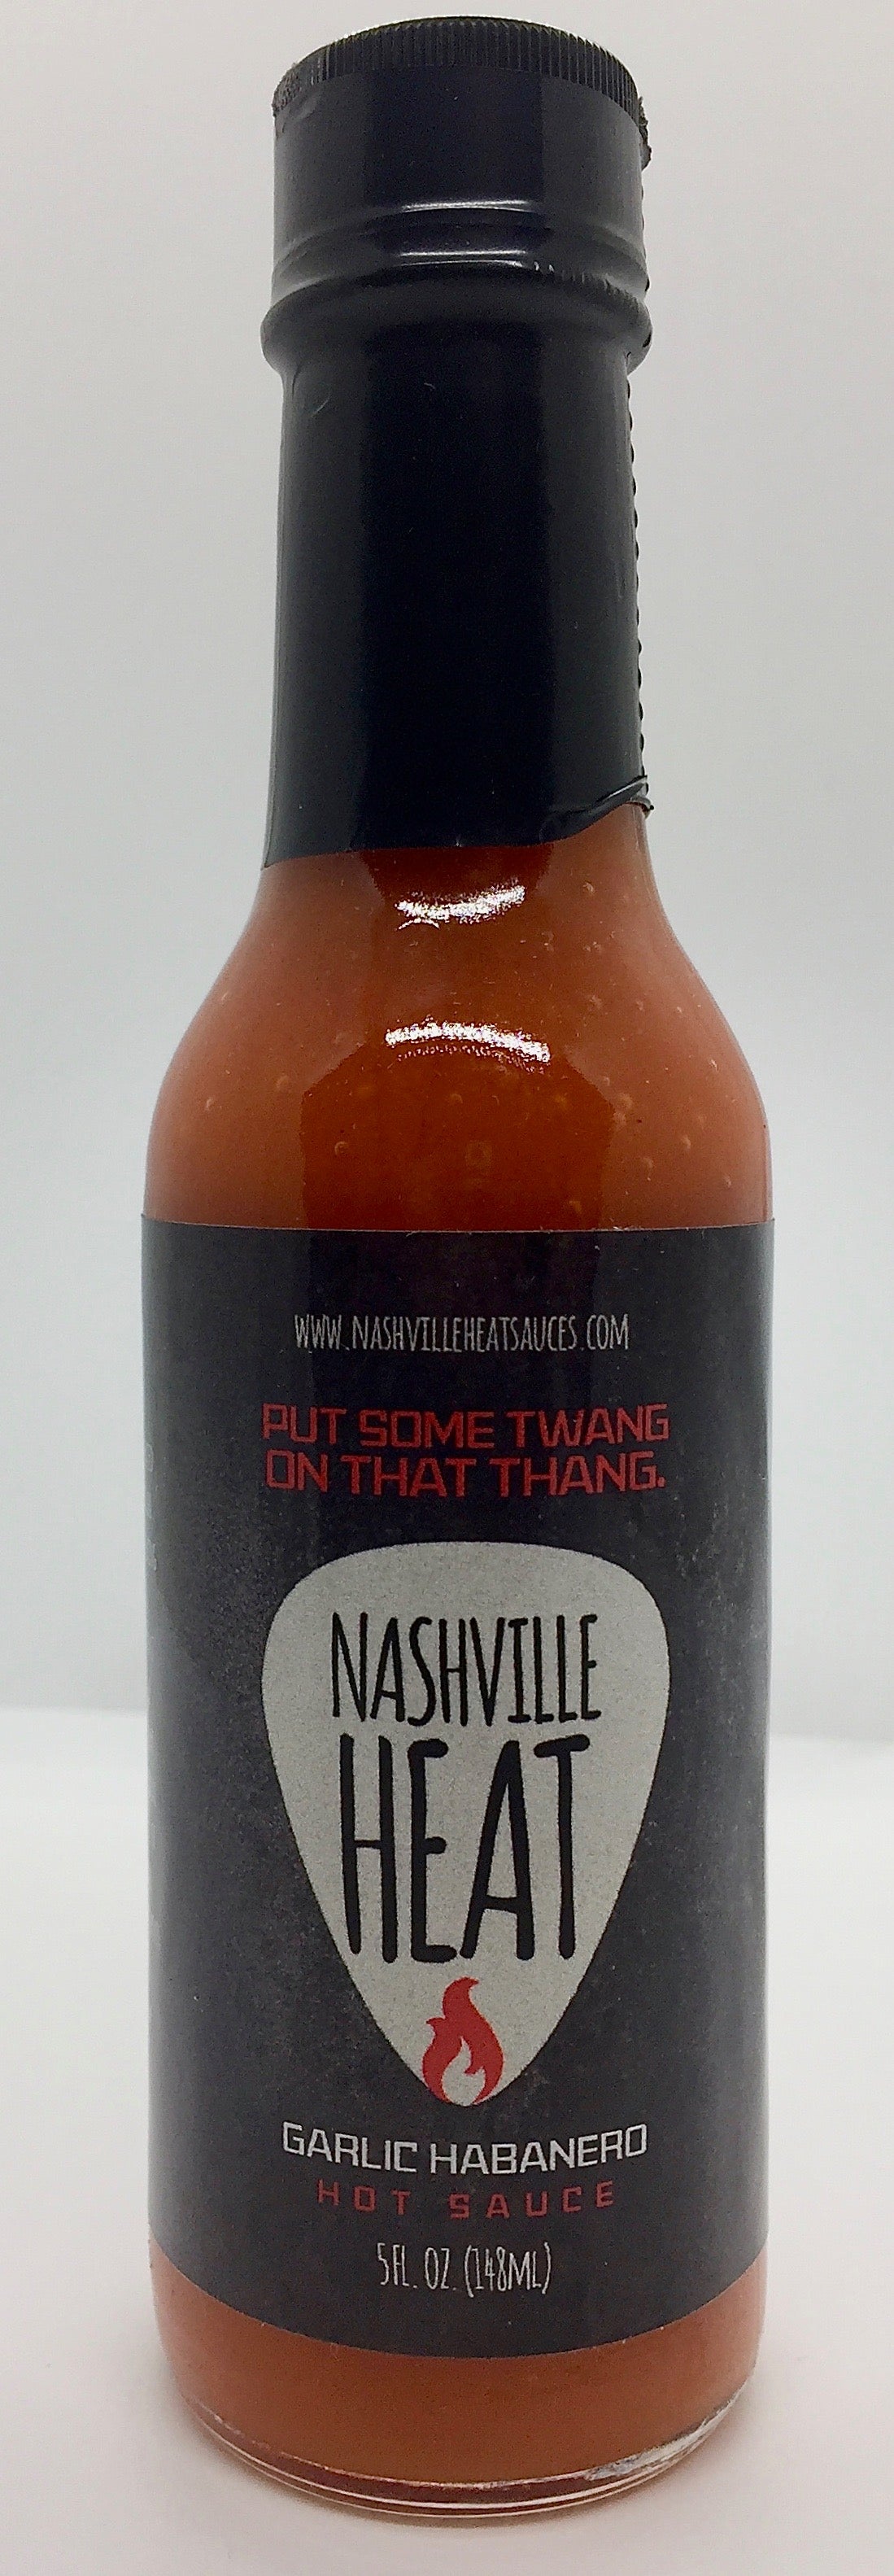 Nashville Heat Garlic Habanero Hot Sauce 5oz